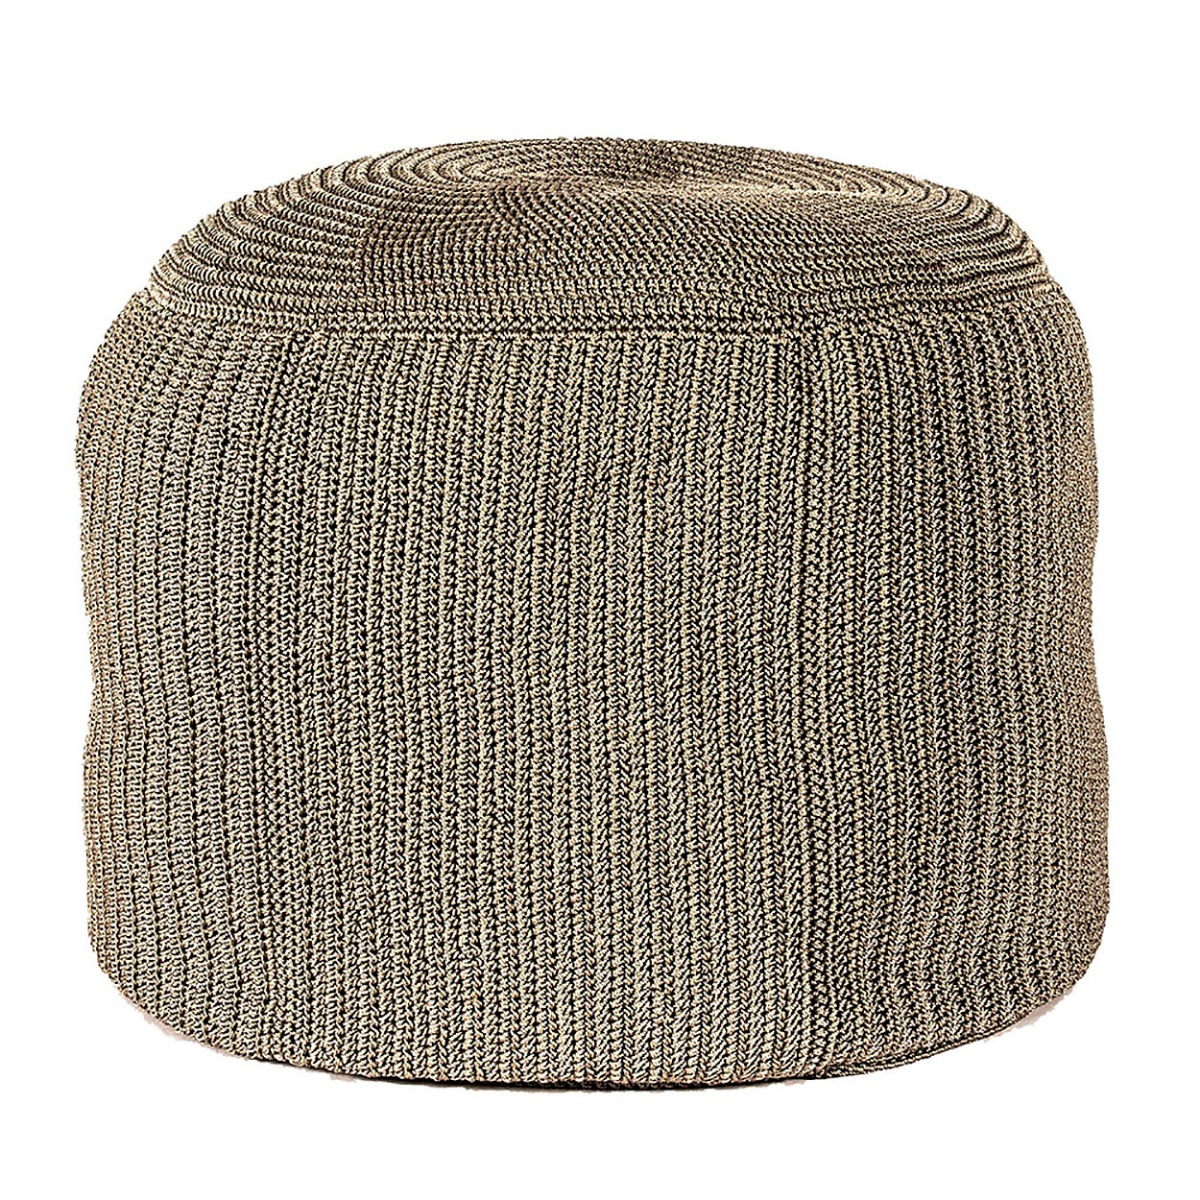 Vincent Sheppard Otto Outdoor Poef - Taupe